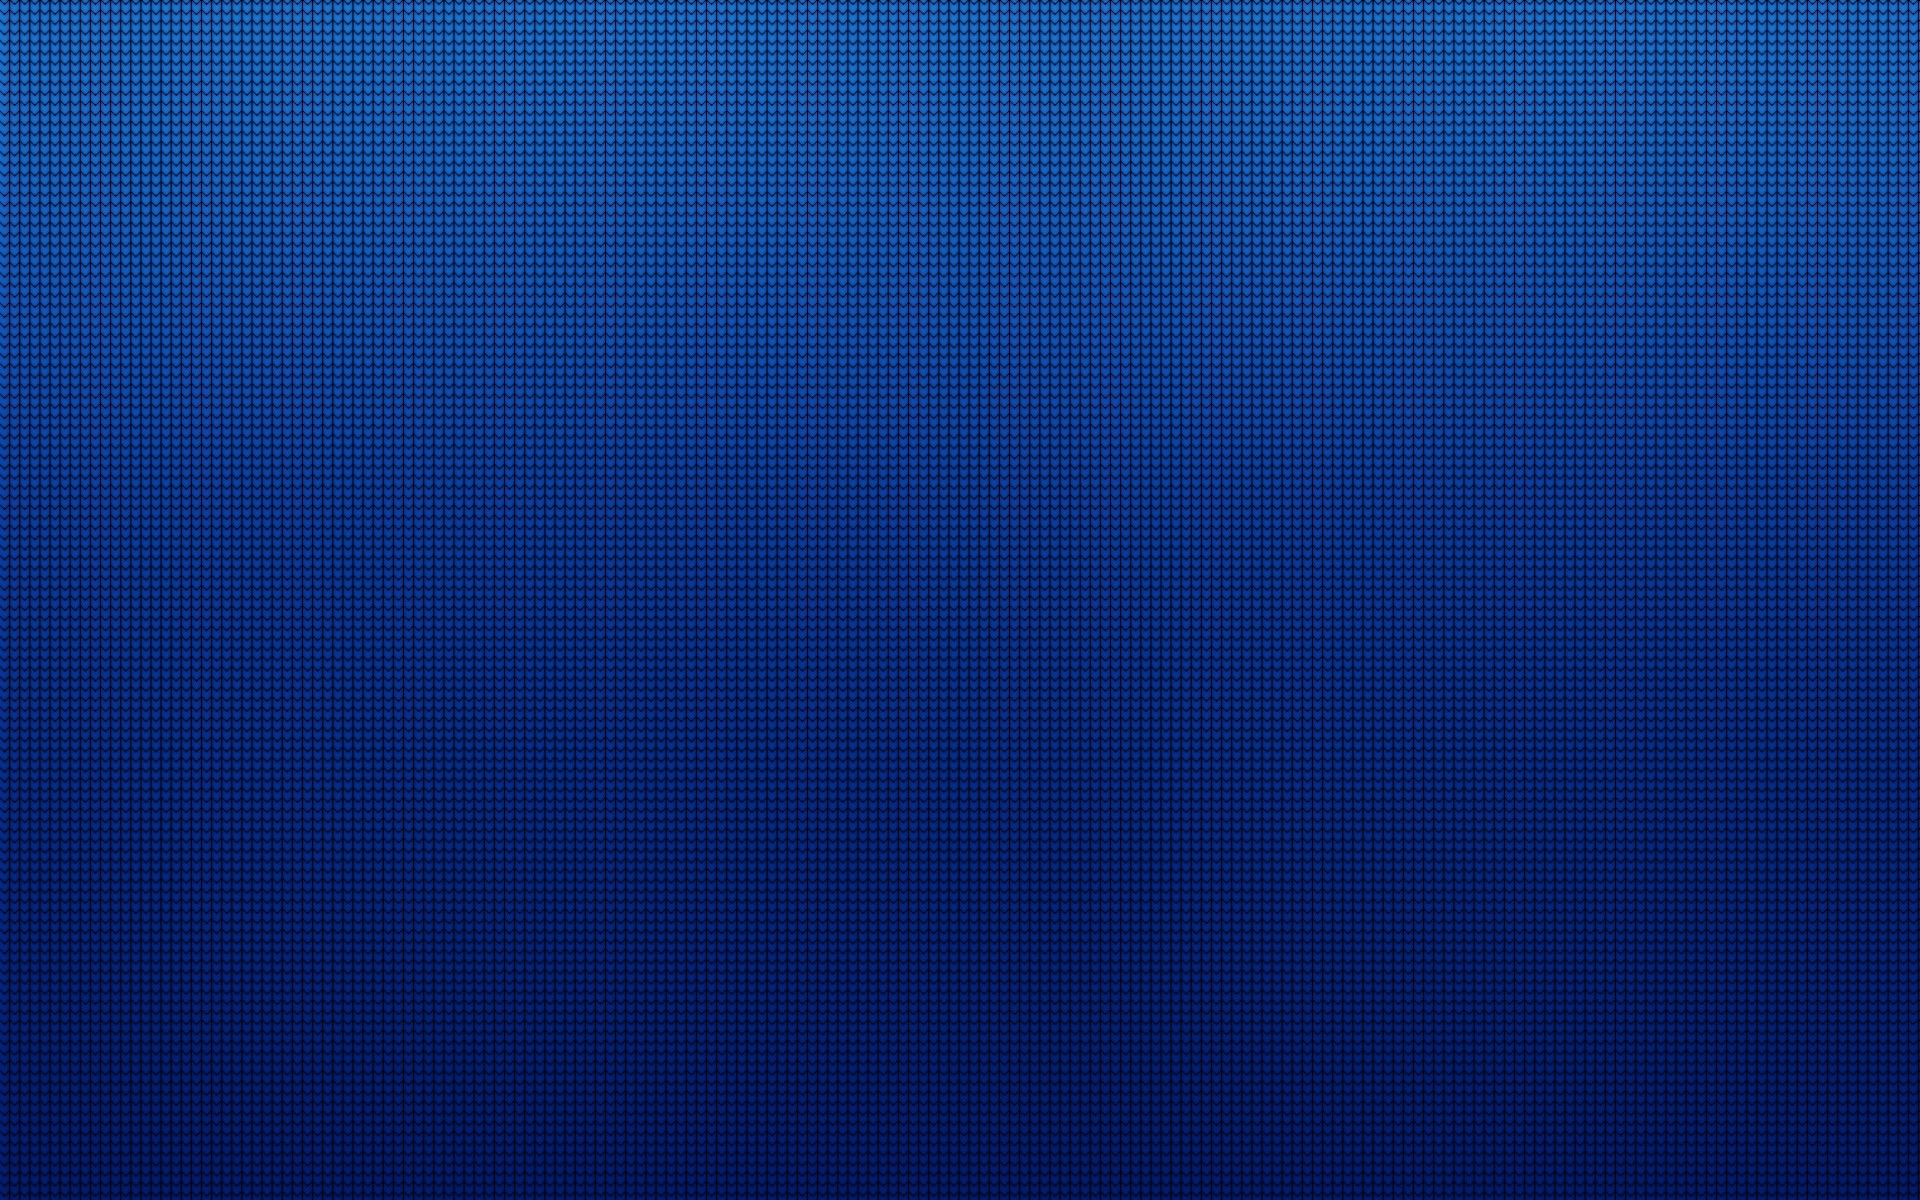 Dark blue checks web background  Daily pics update  HD Wallpapers